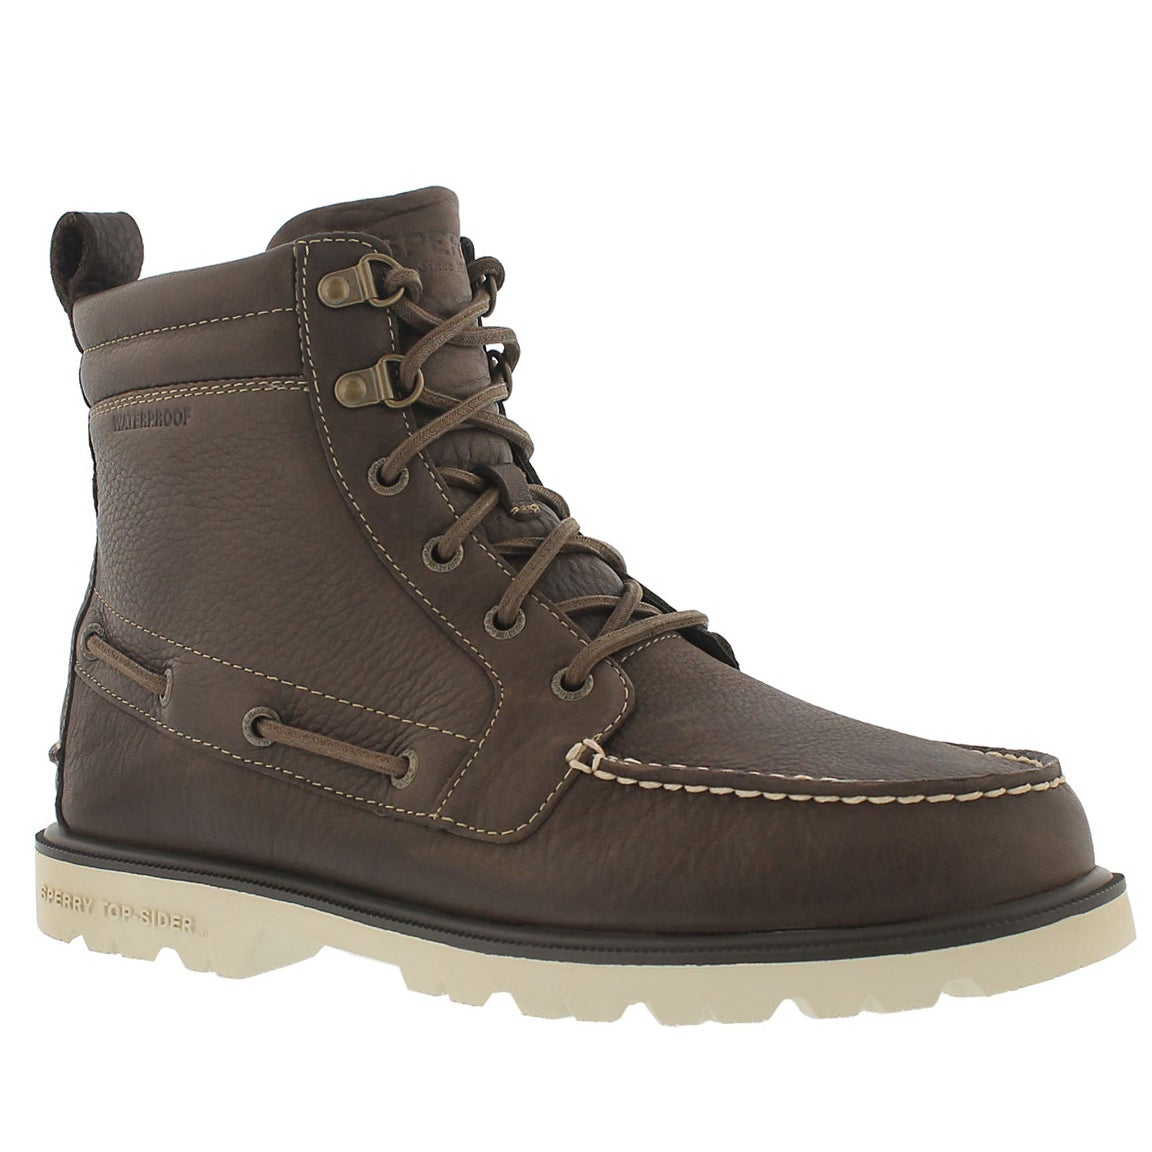 Men's AUTHENTIC ORIGINAL LUG BOOT waterproof boots